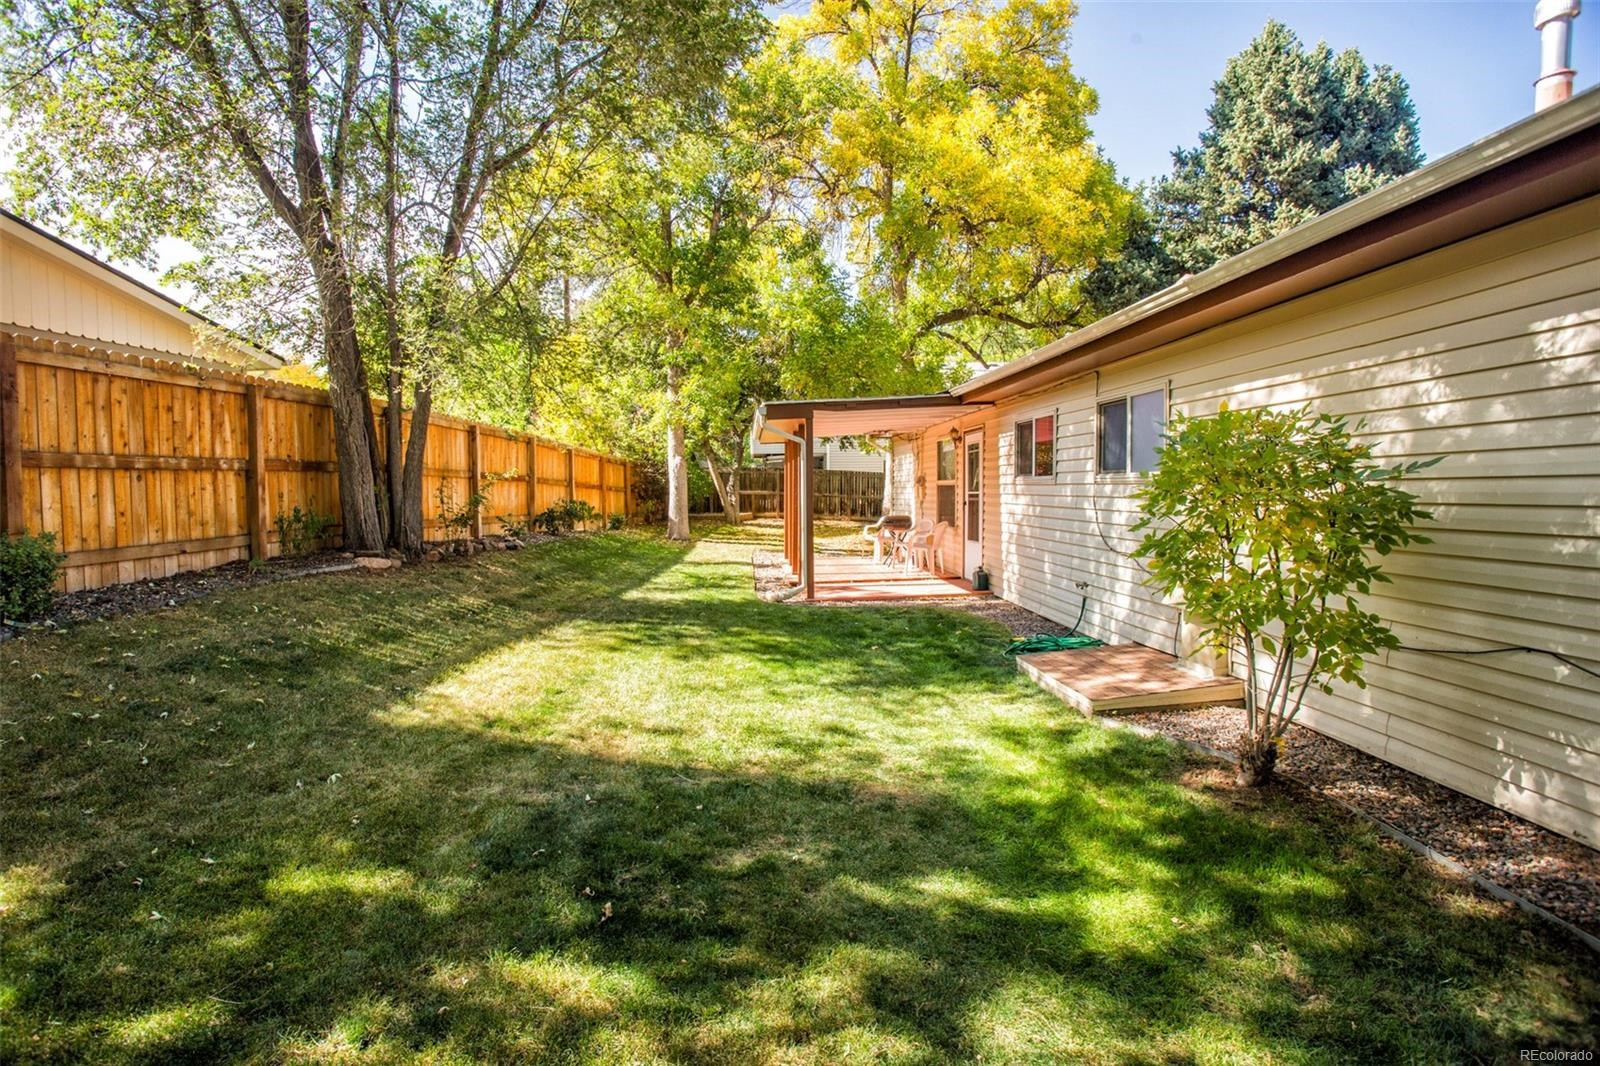 MLS# 1591889 - 22 - 10120 W 8th Place, Lakewood, CO 80215